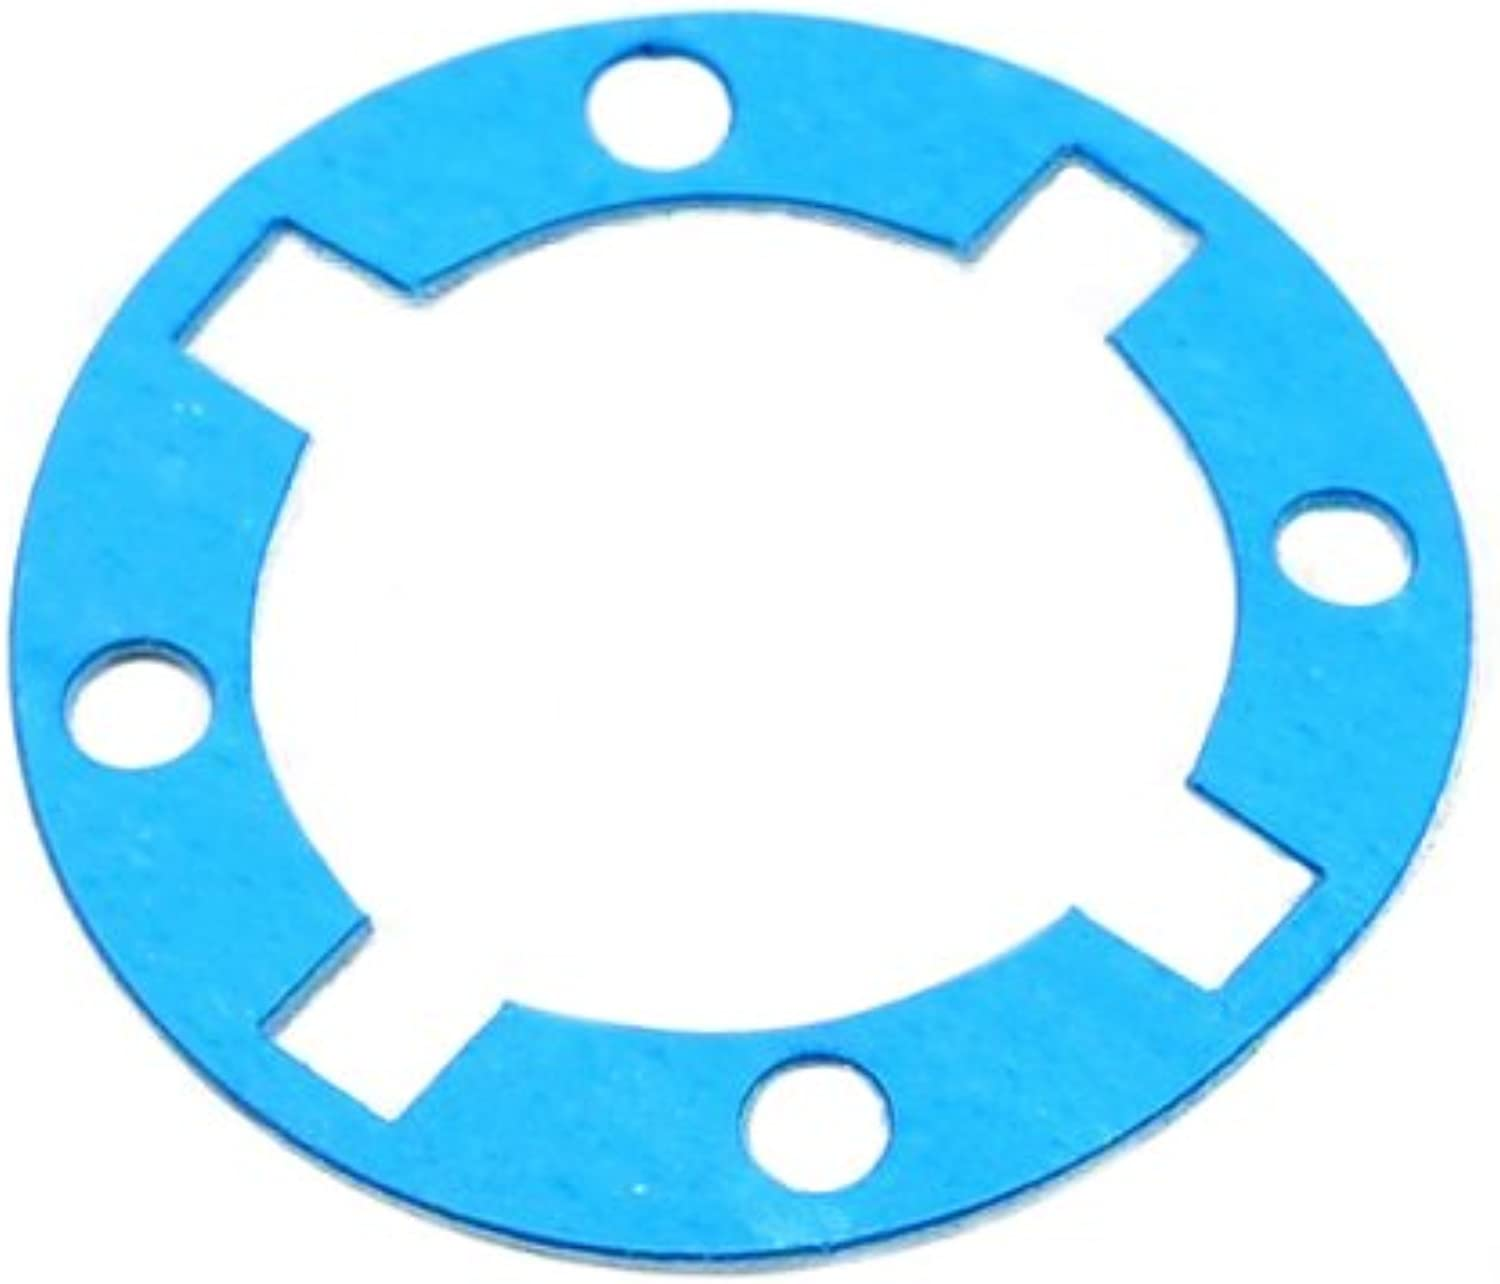 Racers Edge T02153 Gear Differential Seal (1) for Racers Edge 2WD Vehicles